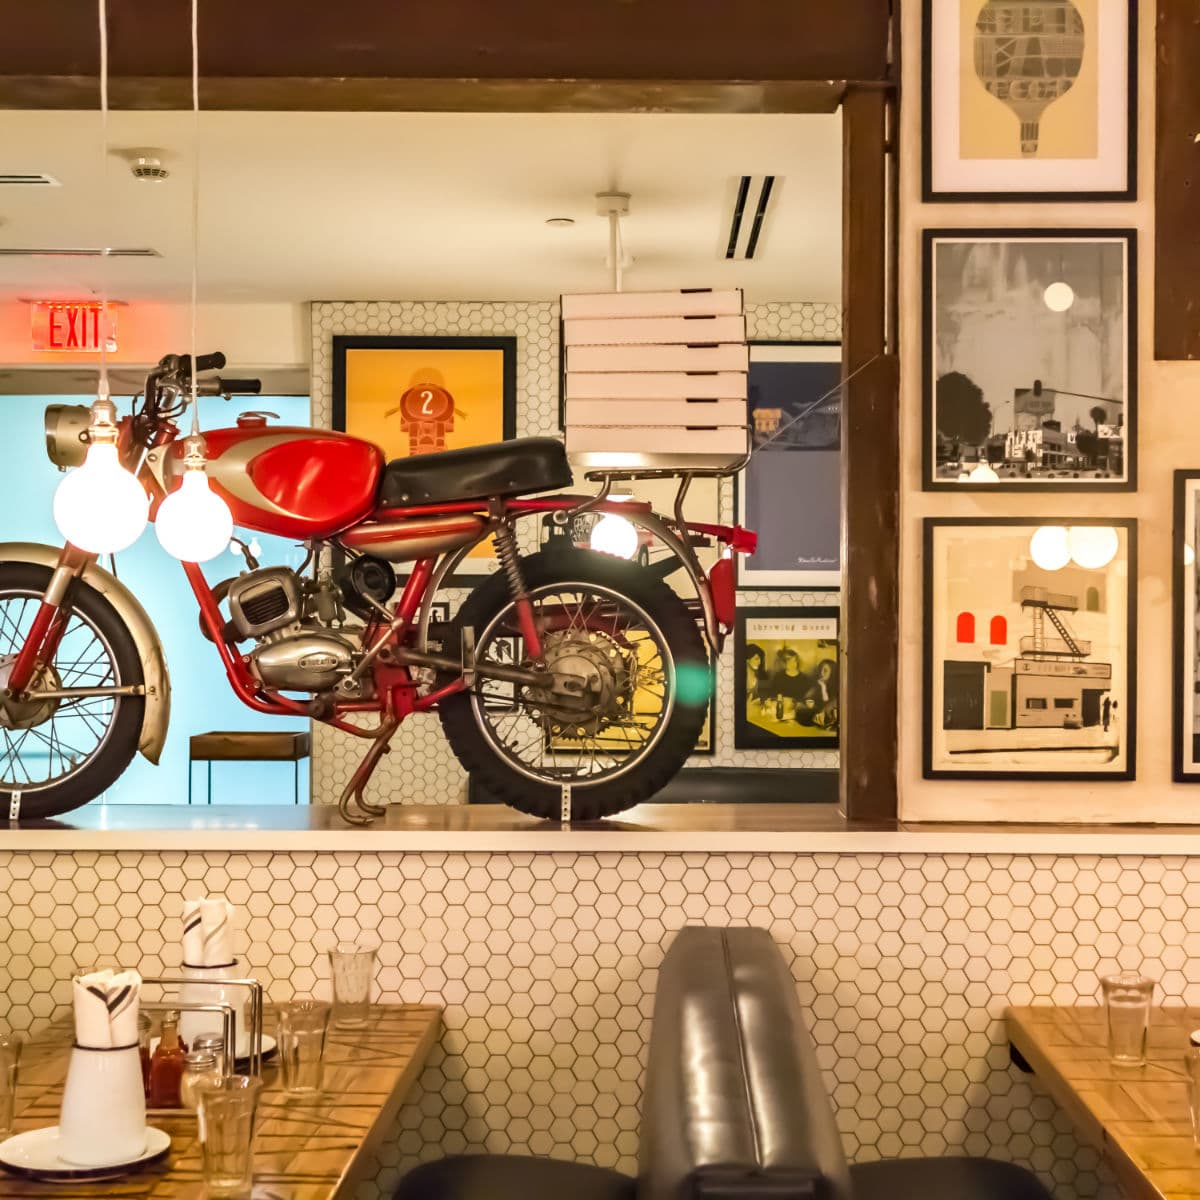 Union Park Dining Room: First Look At New Highland Park Pizzeria From Dallas